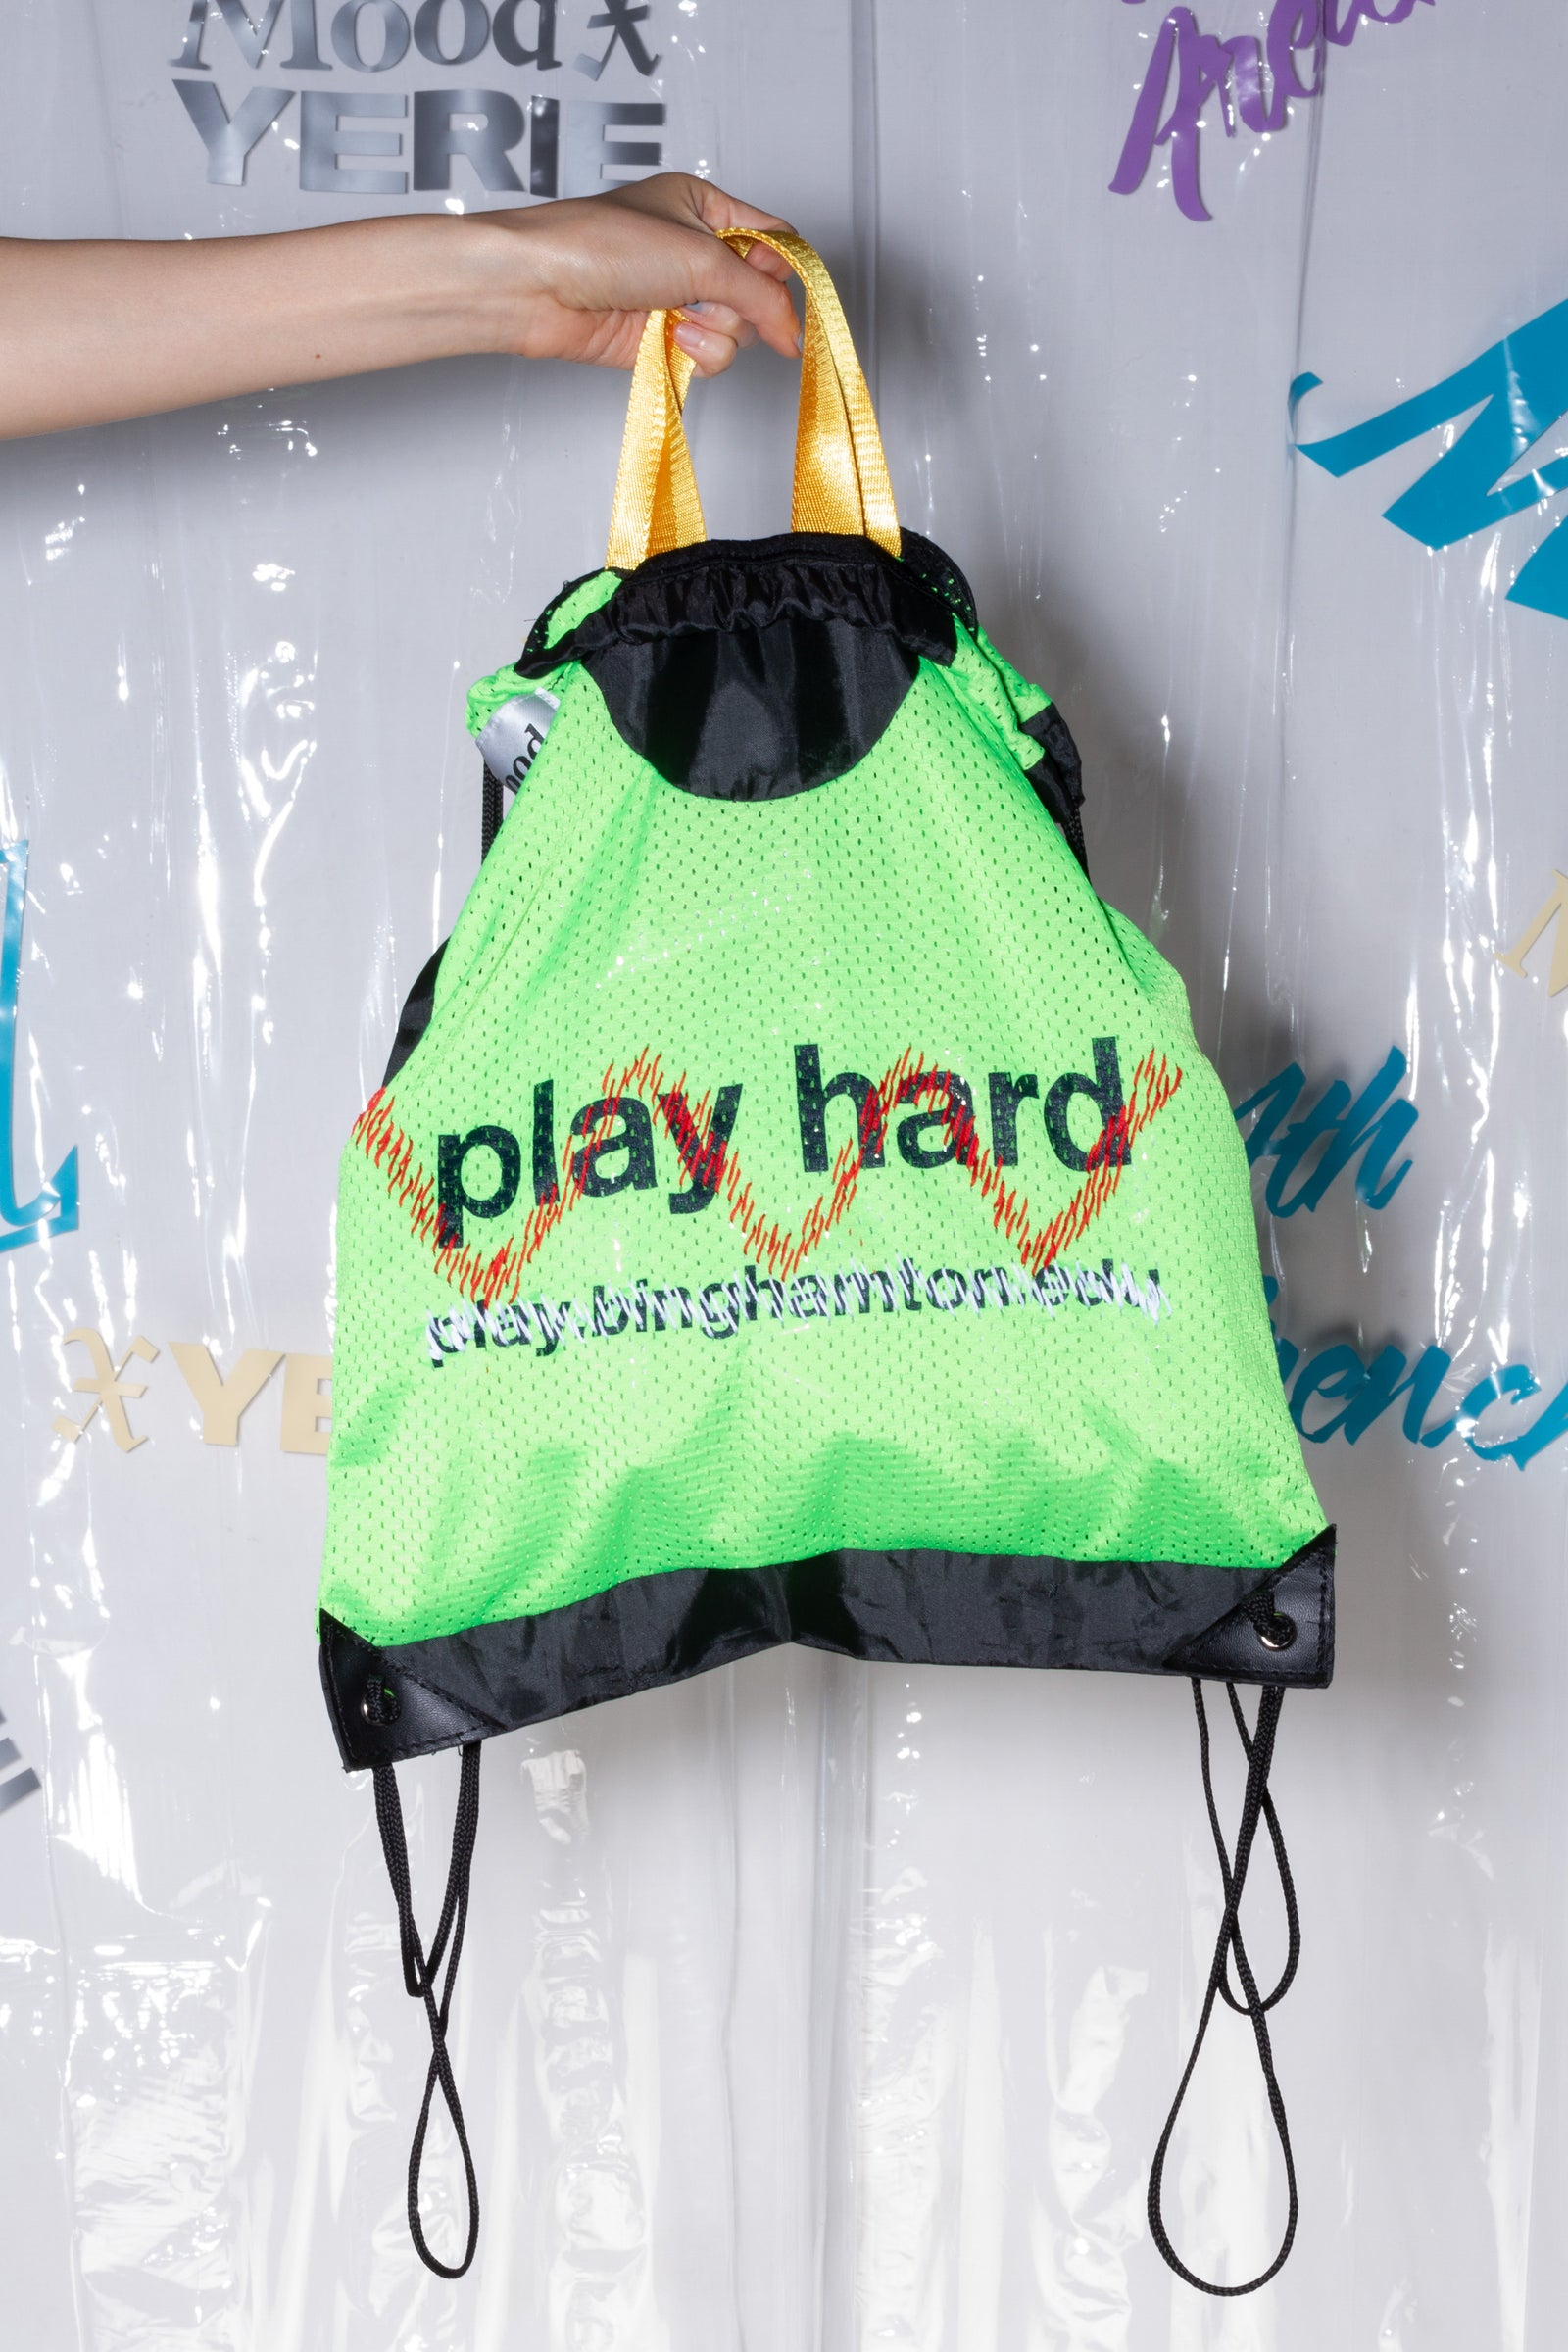 Play Hard Drawstring Backpack, Mood X Yerie